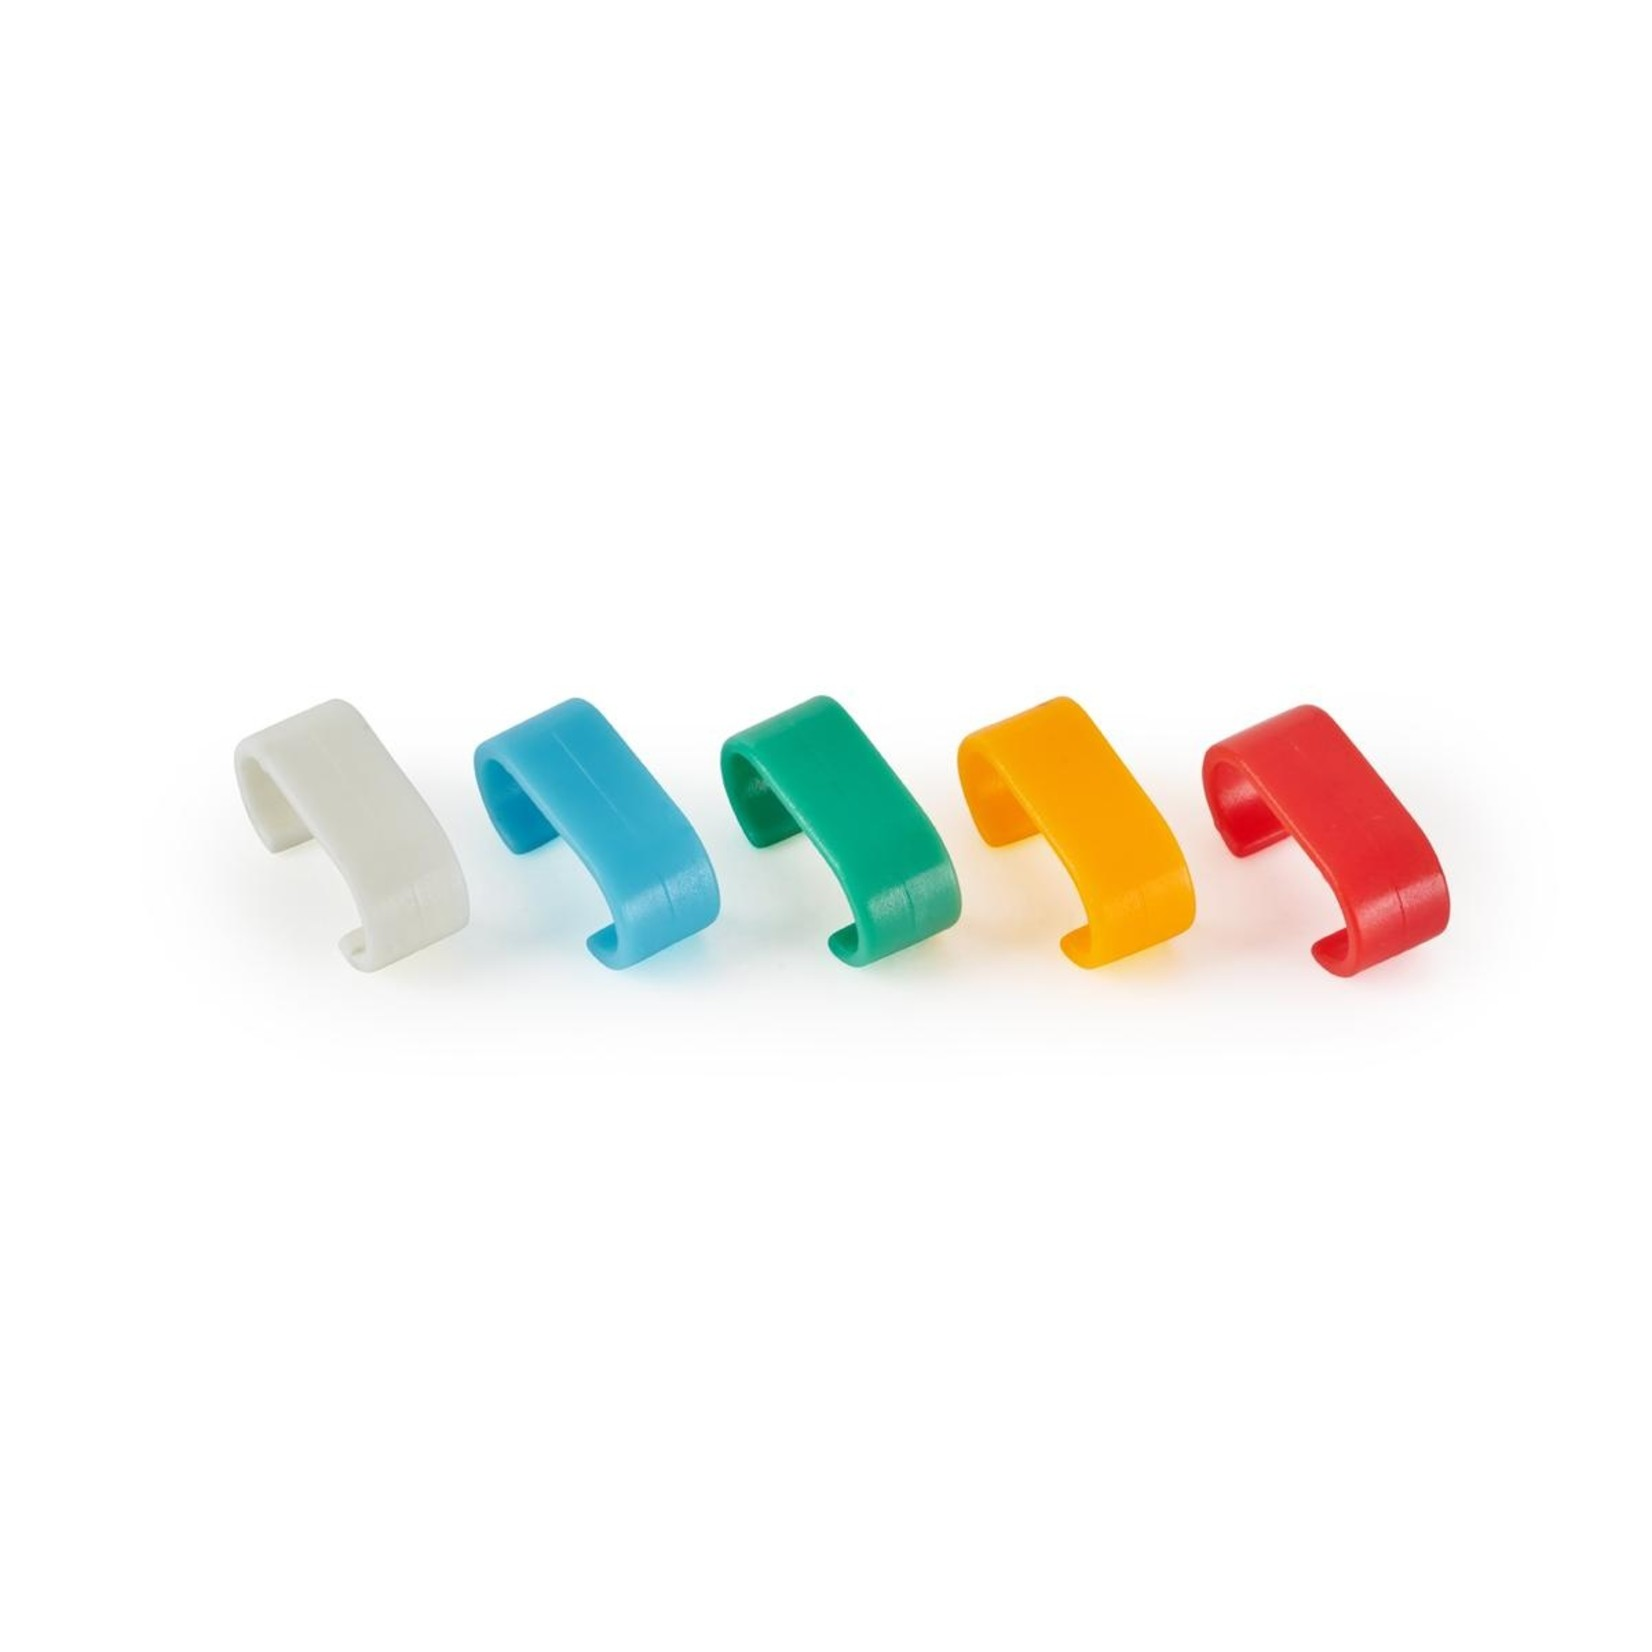 Rockboard RockBoard Color Code Rings for Flat Patch Cables - 10 pieces, 5 Colors (2 of each color)